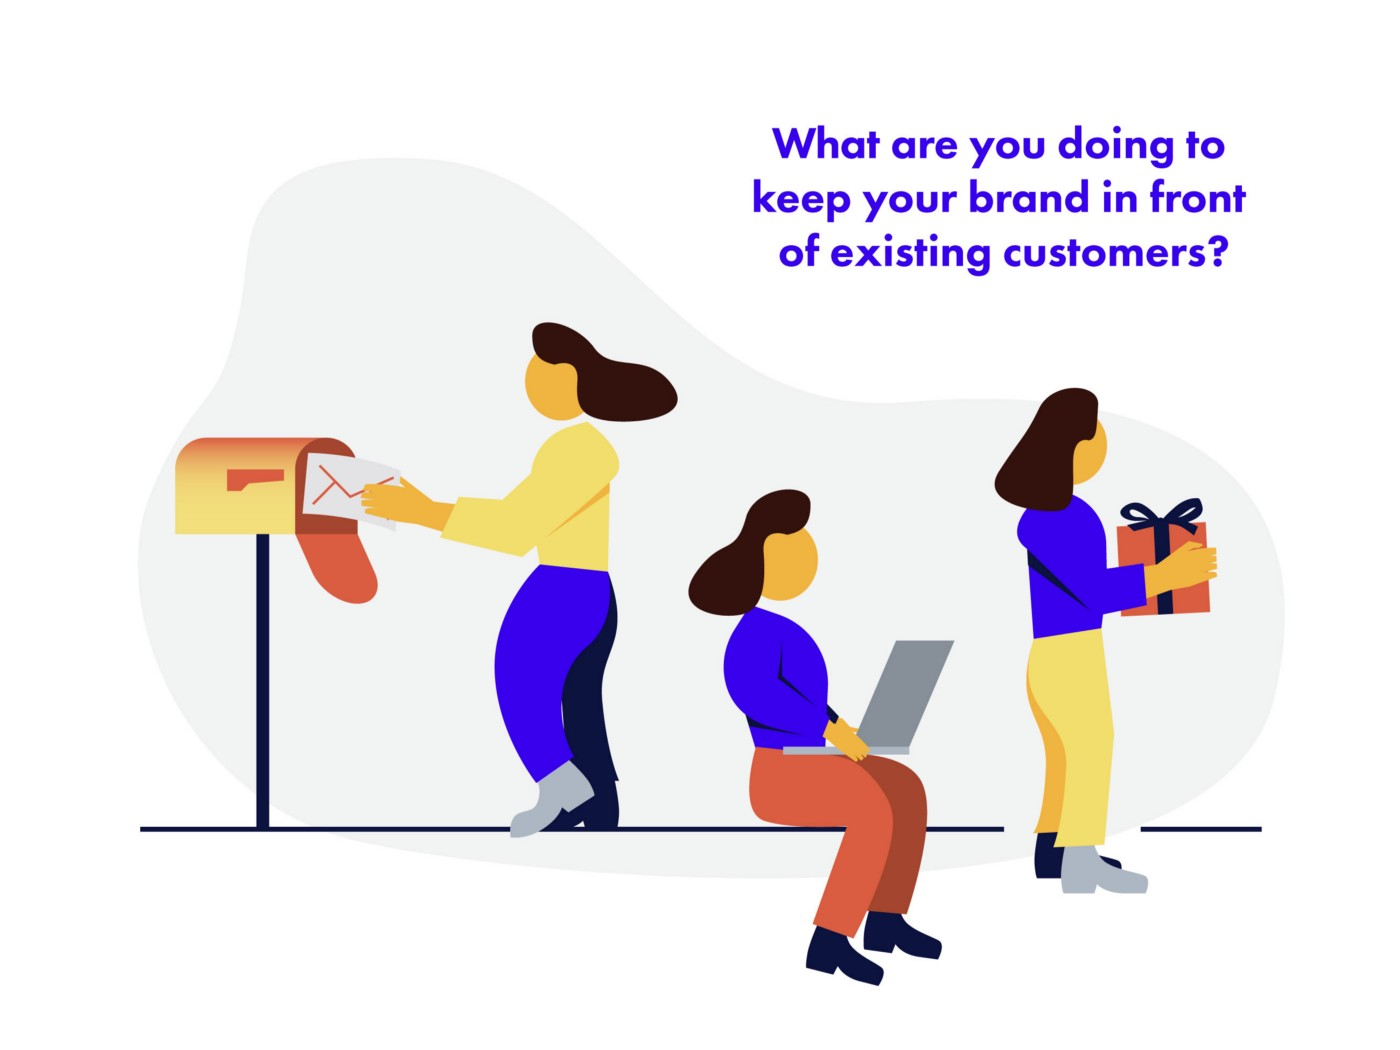 What are you doing to keep your brand in front of existing customers?